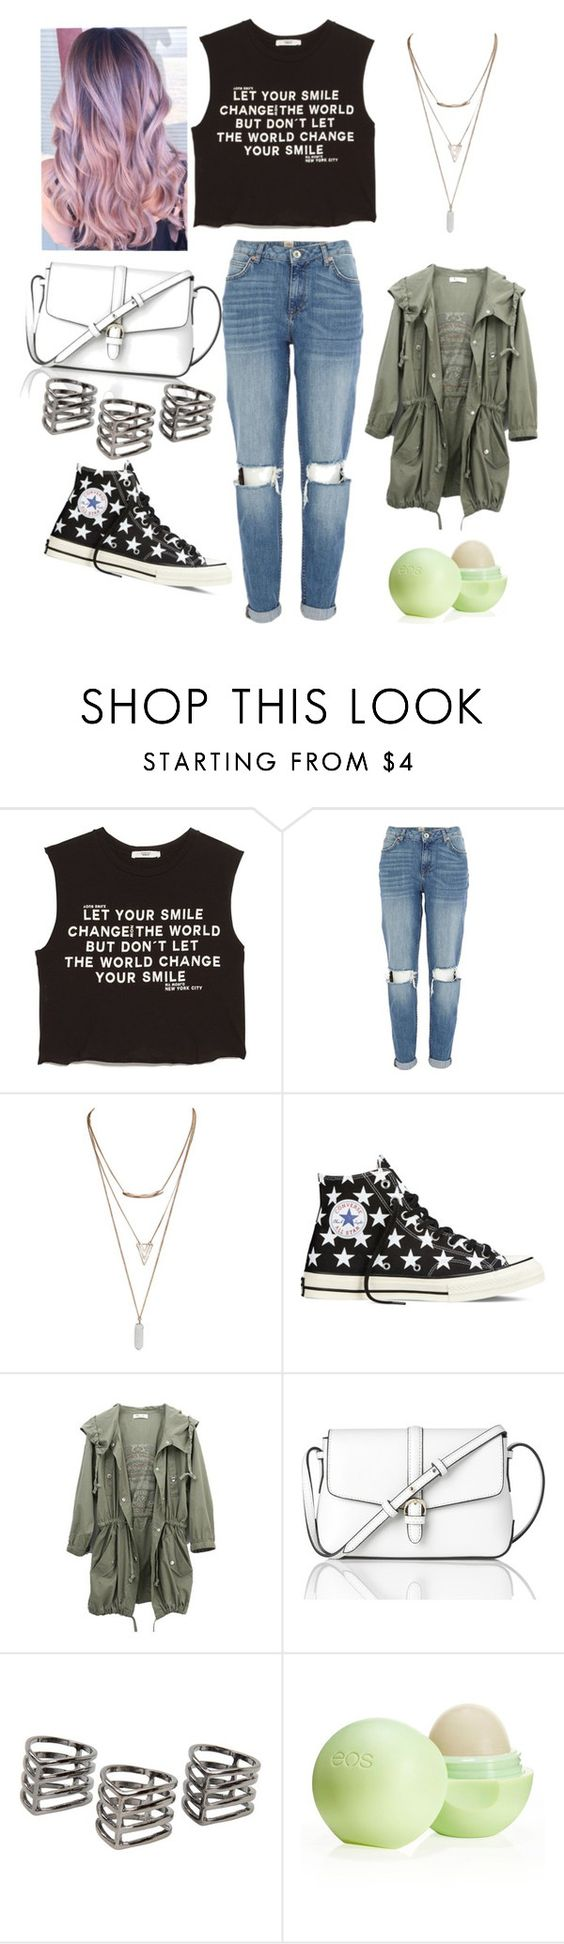 """Change"" by zebraalyce10 ❤ liked on Polyvore featuring MANGO, River Island, Wet Seal, Converse, L.K.Bennett and Eos"